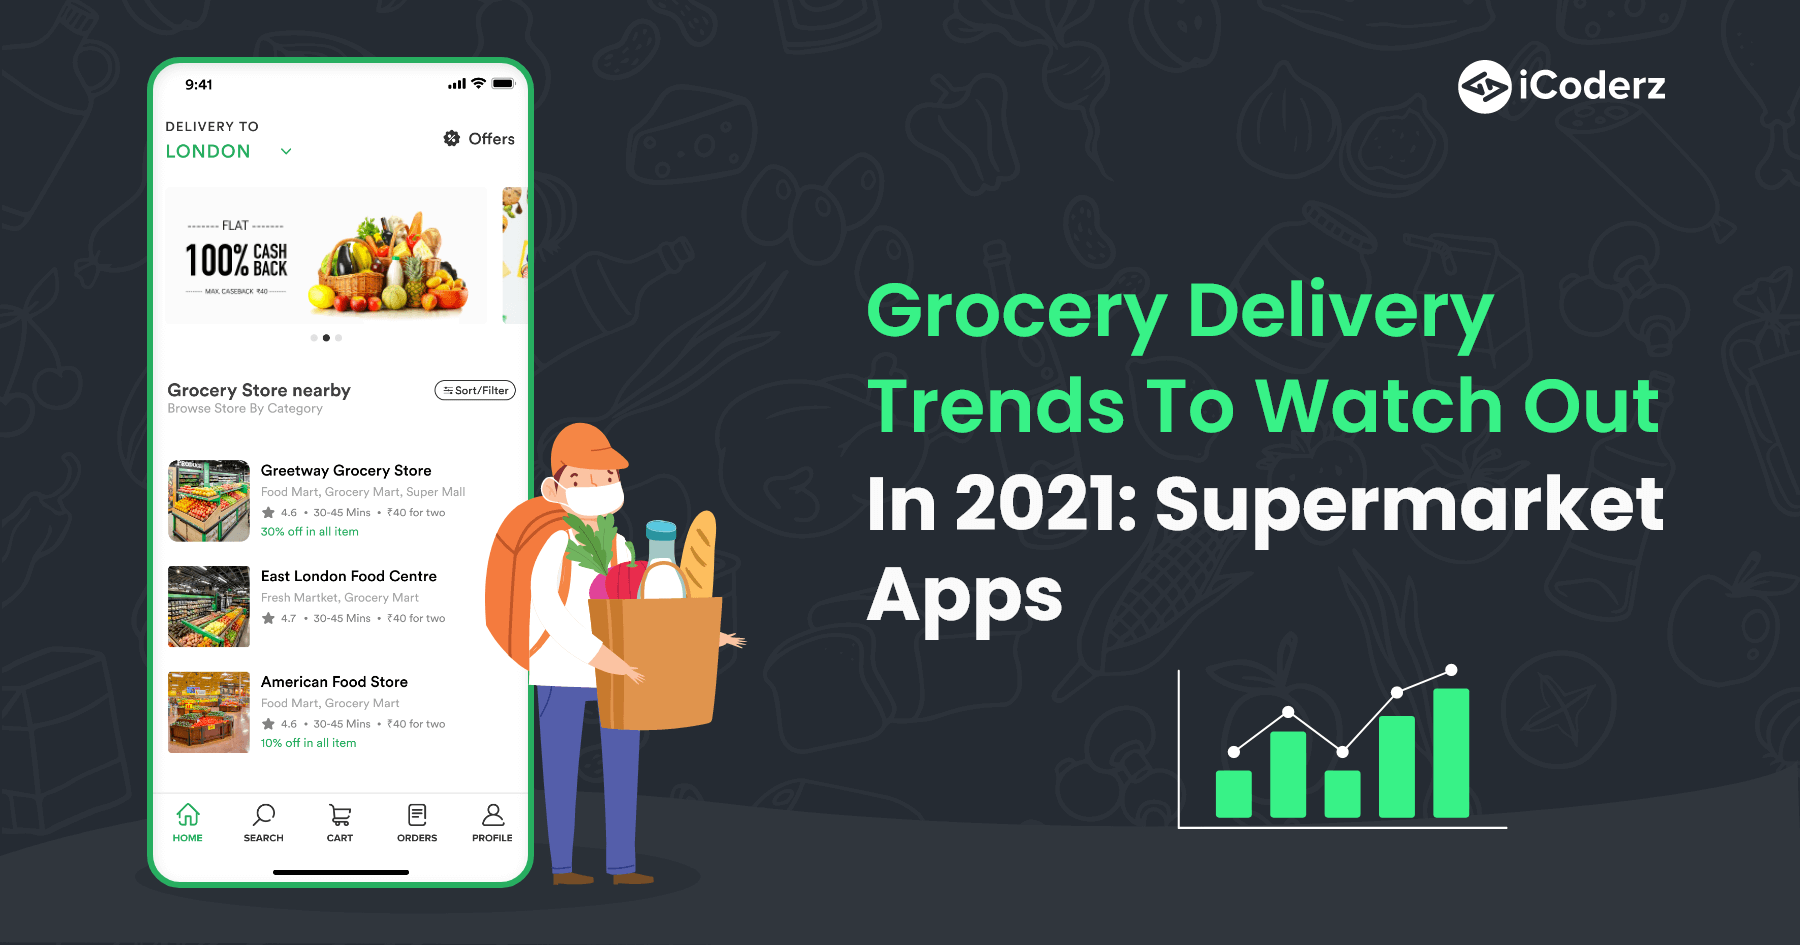 Grocery Delivery Trends to watch out in 2021: Supermarket apps